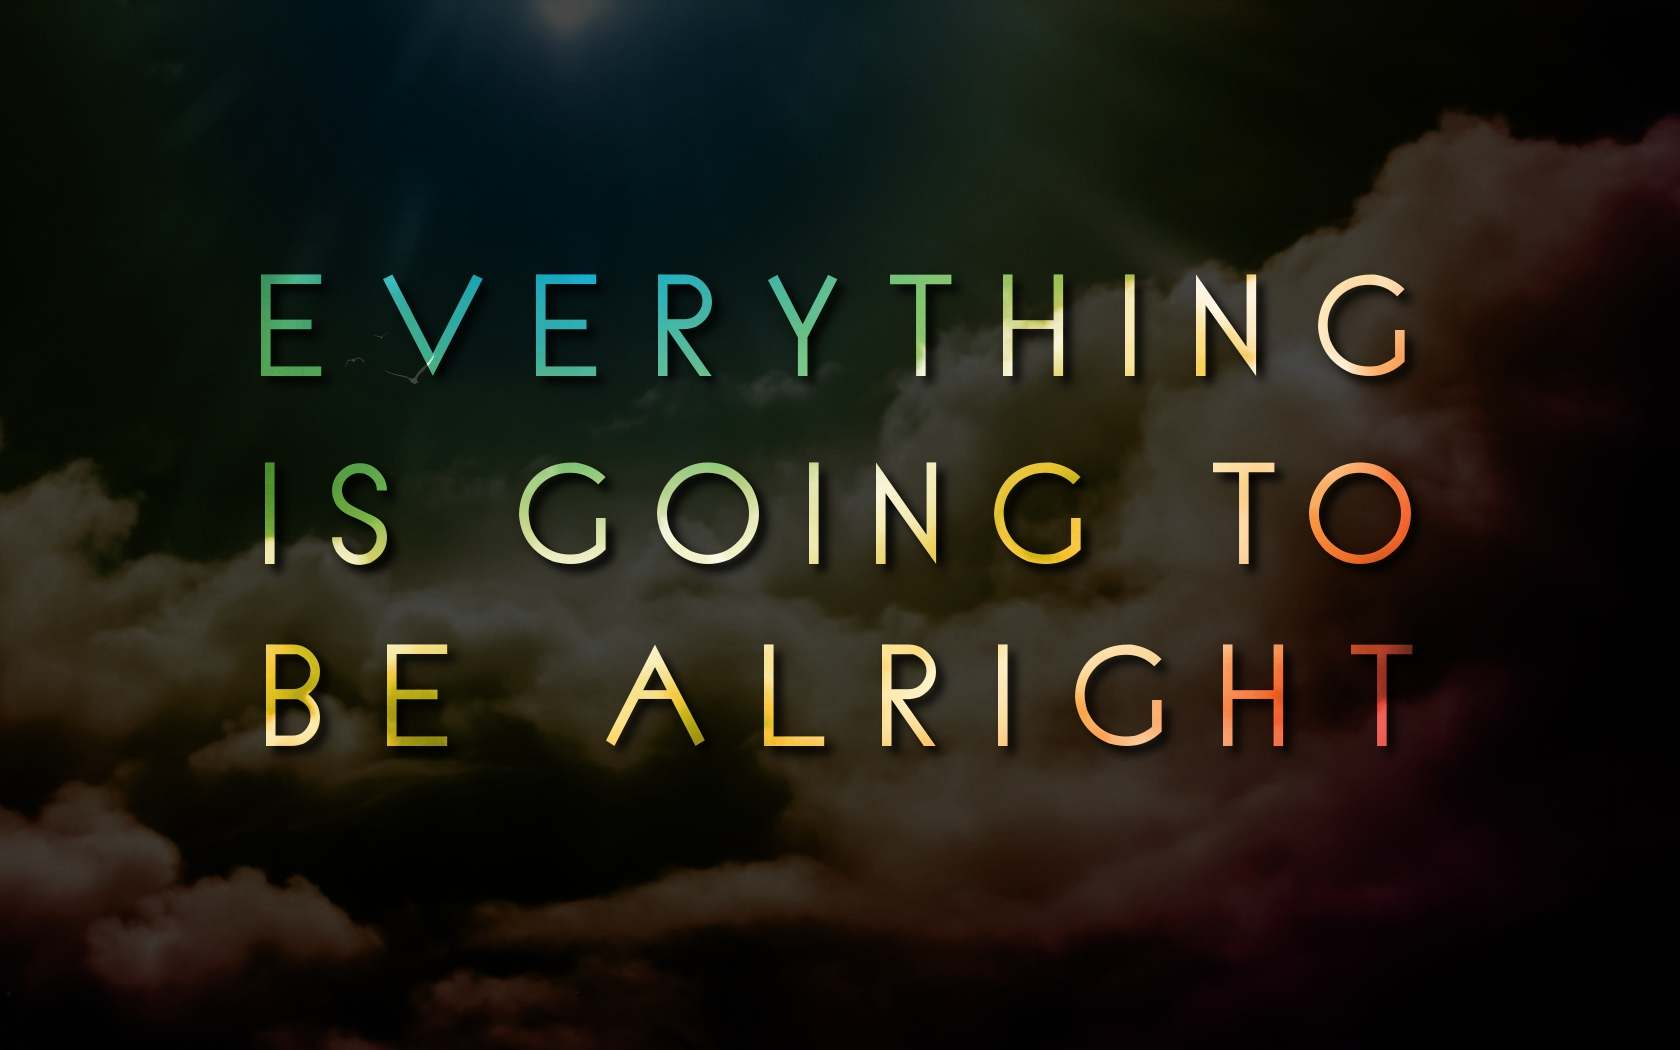 Motivational Wallpaper And Background 1680x1050 Id 165330